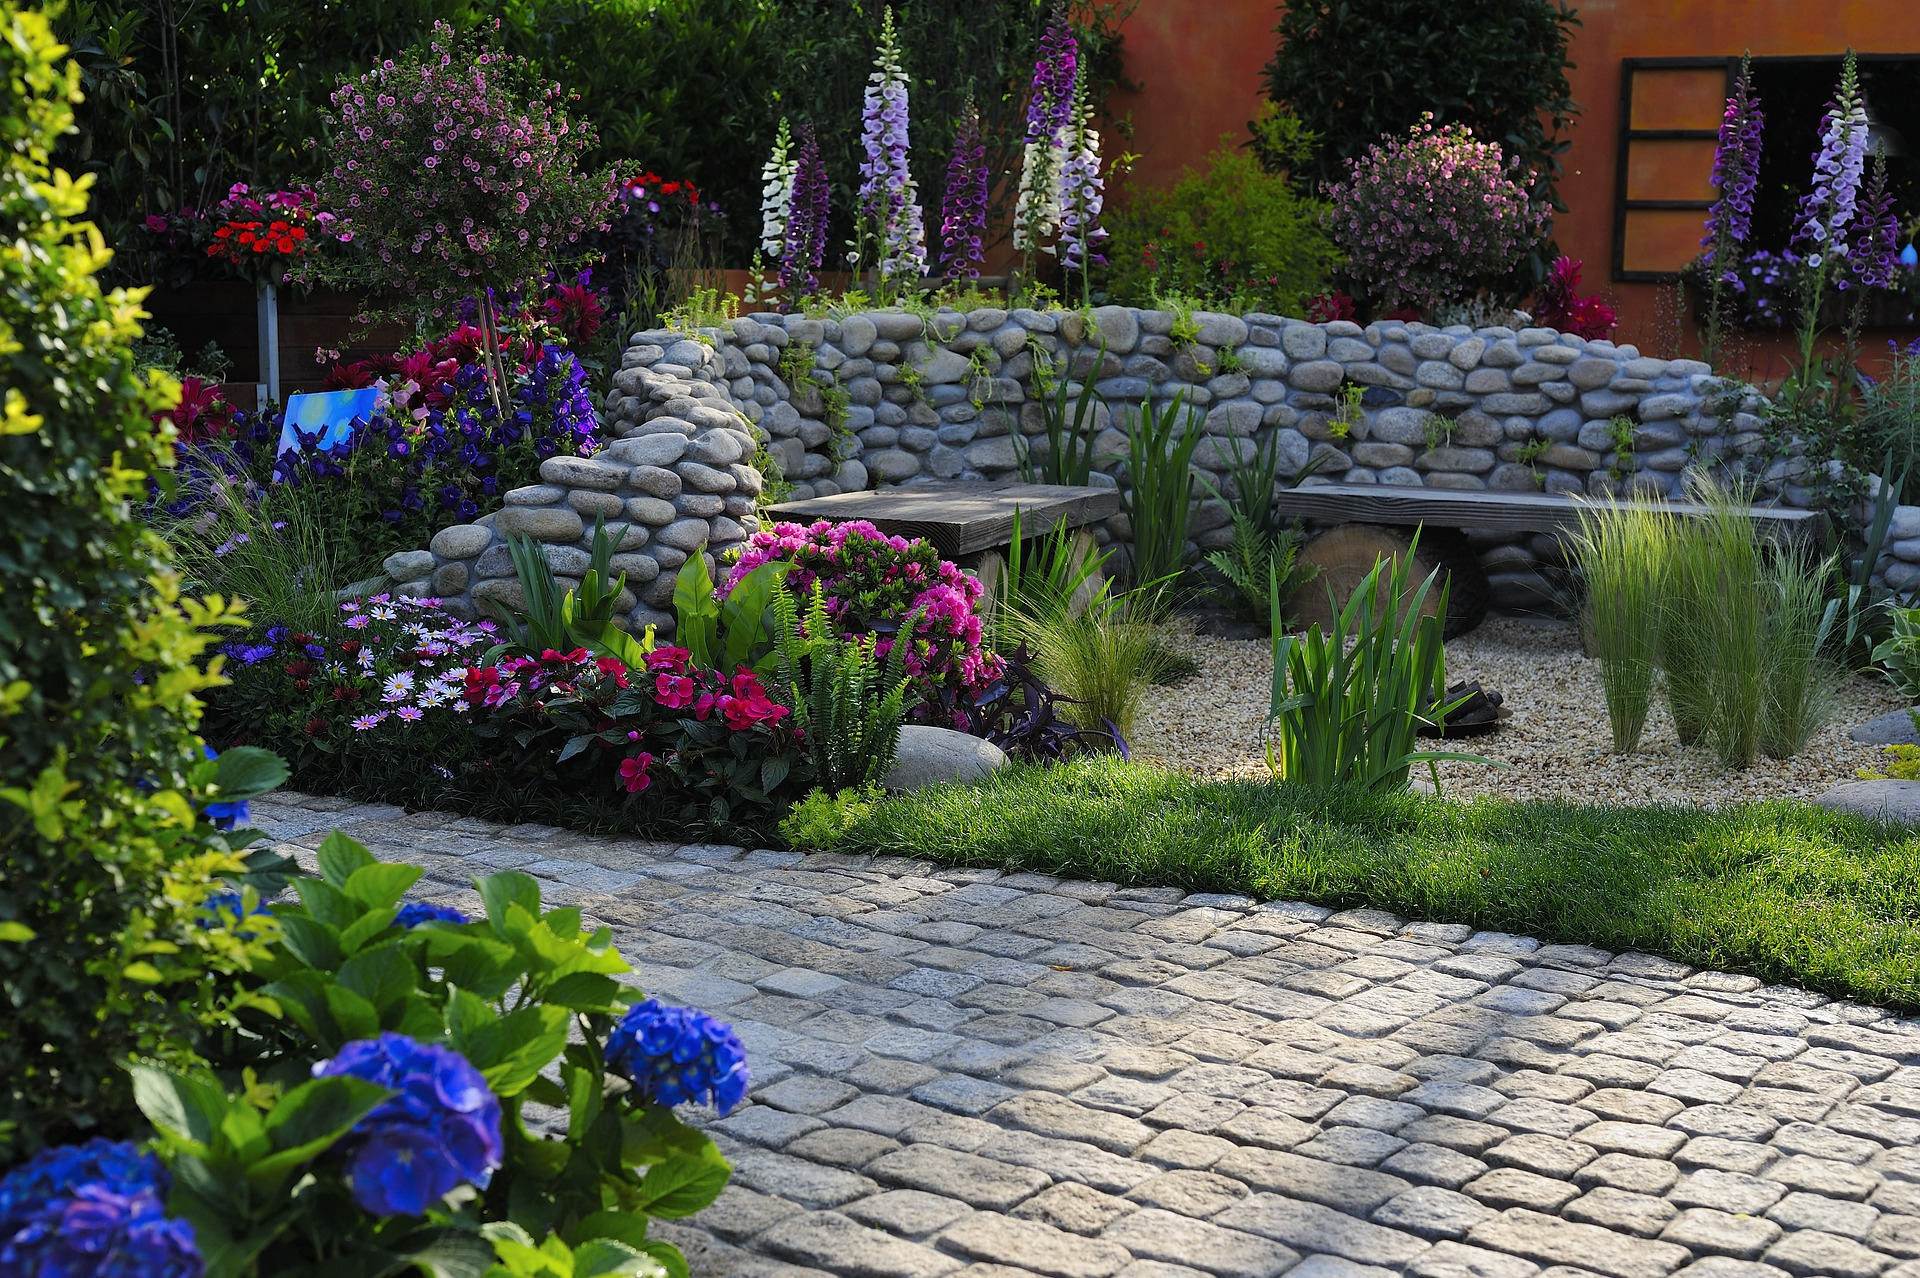 green garden with blue and purple flowers and stone pathway